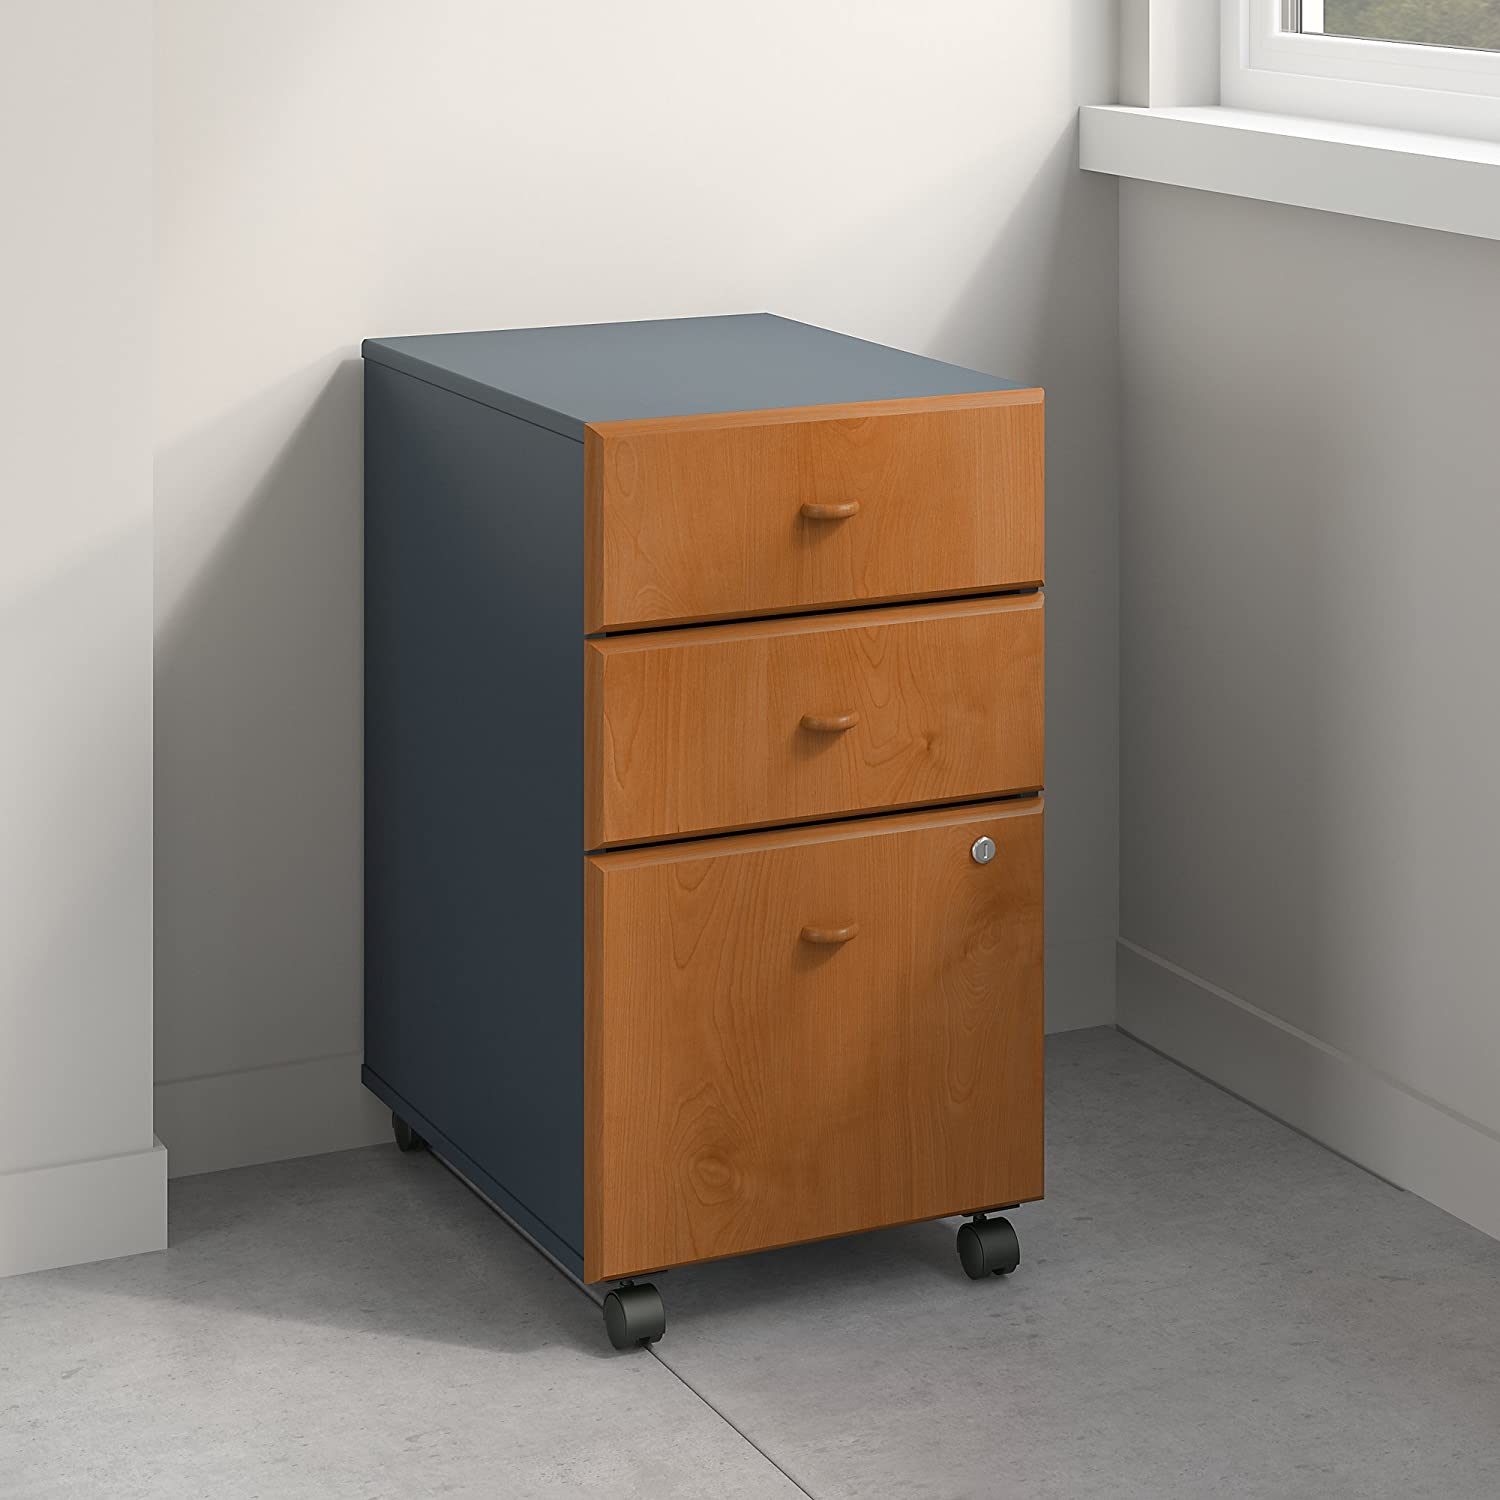 Bush Business Furniture WC57453PSU Series A 3 Drawer Mobile File Cabinet, Natural Cherry/Slate